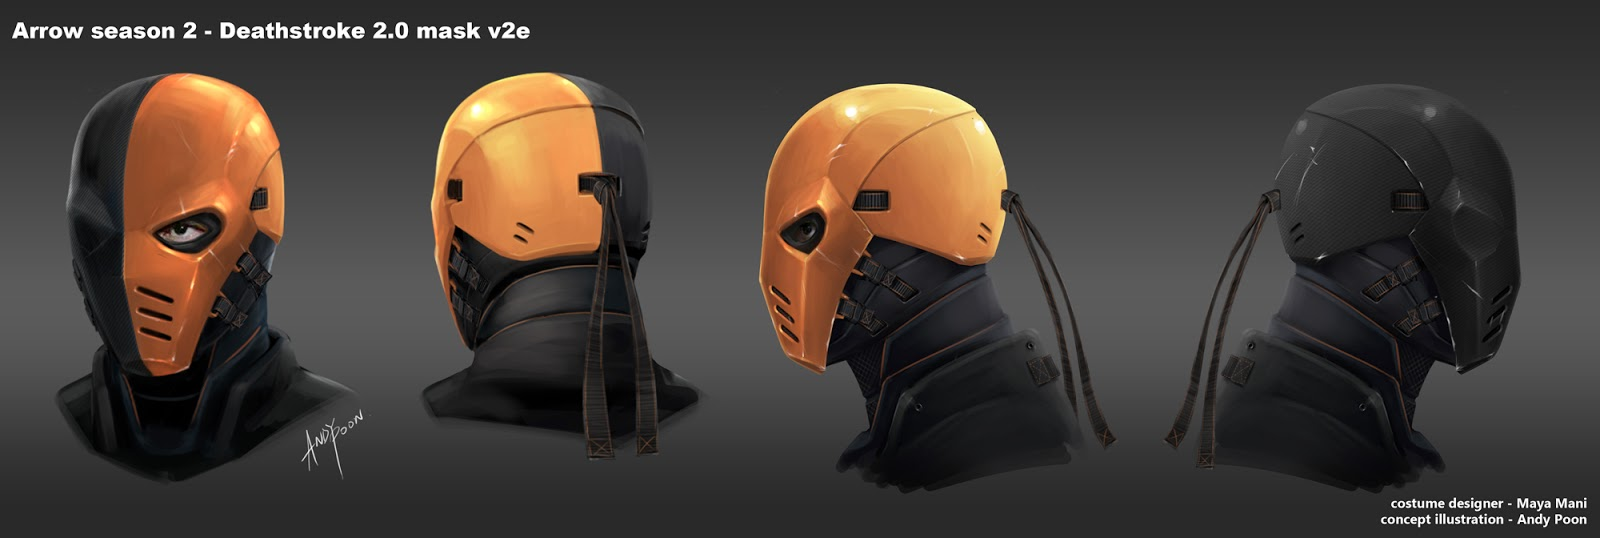 So here is the deathstroke season 2 mask! Iu0027m not having so much luck with making masks. Any one interested in commisioning this mask for me? & Help source Arrow Deathstroke pieces - Page 3